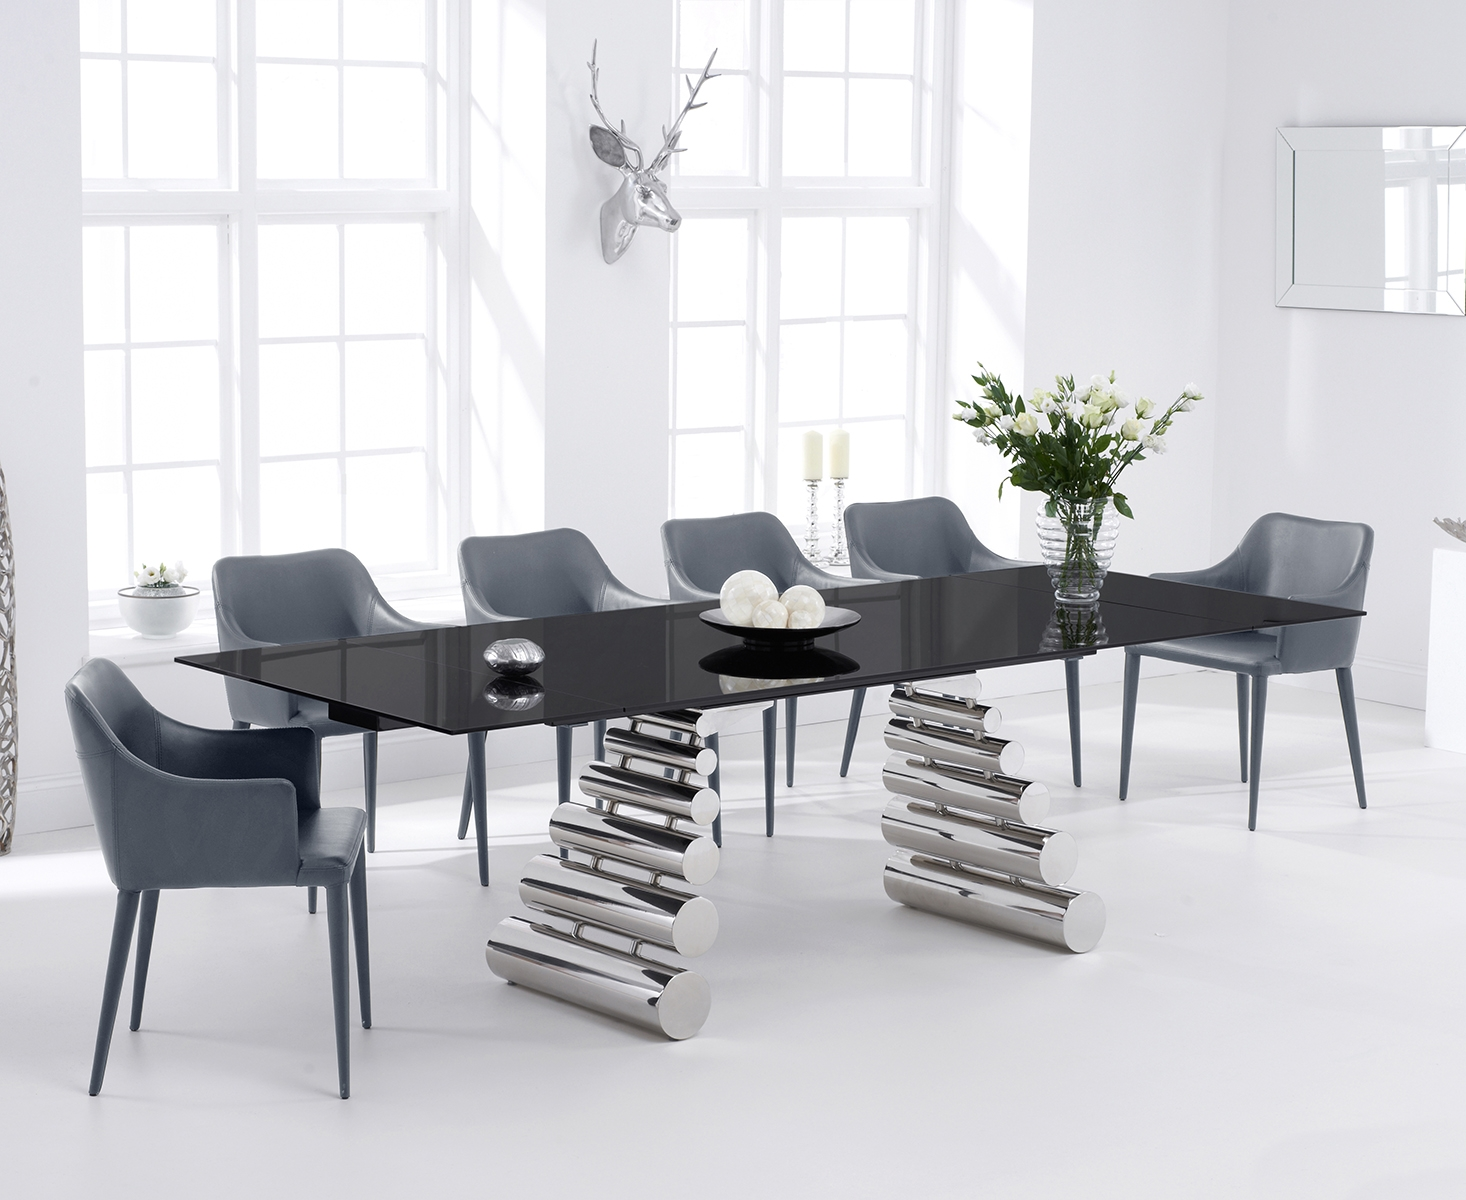 Firenze 180cm Black Glass and Metal Extending Dining Table with Cuba Chairs